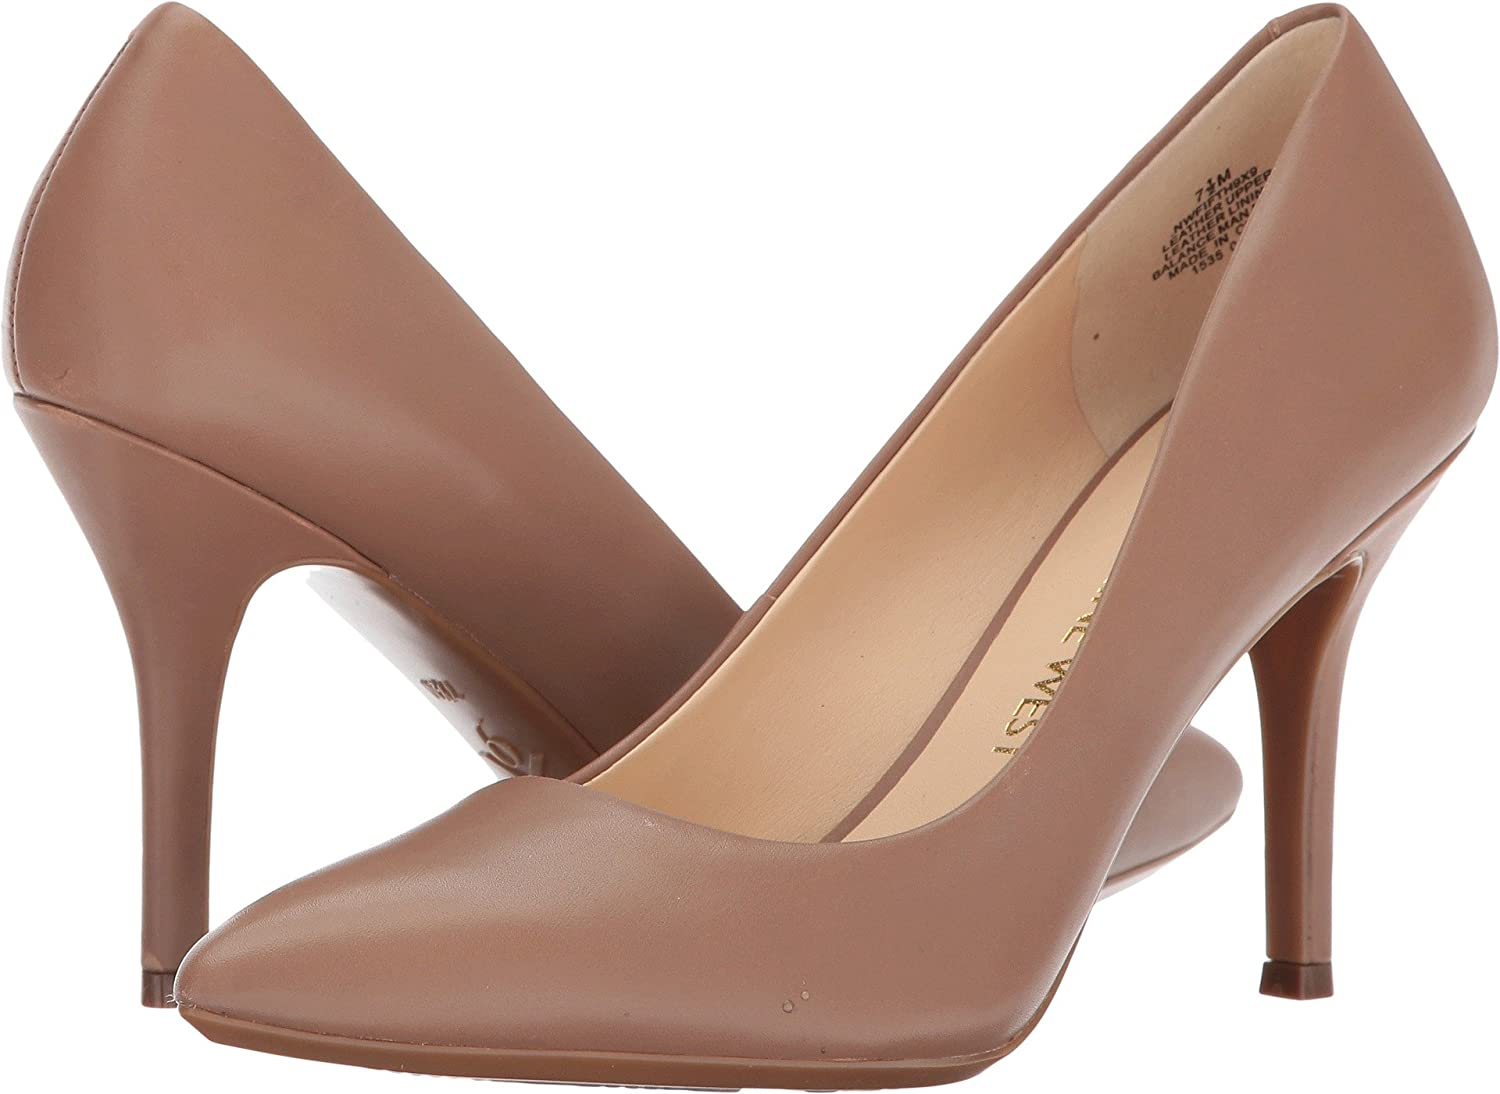 Nine West Women's FIFTH9X Fifth Pointy Toe Pumps B075HZ9KFC 6 C/D US|Natural Leather